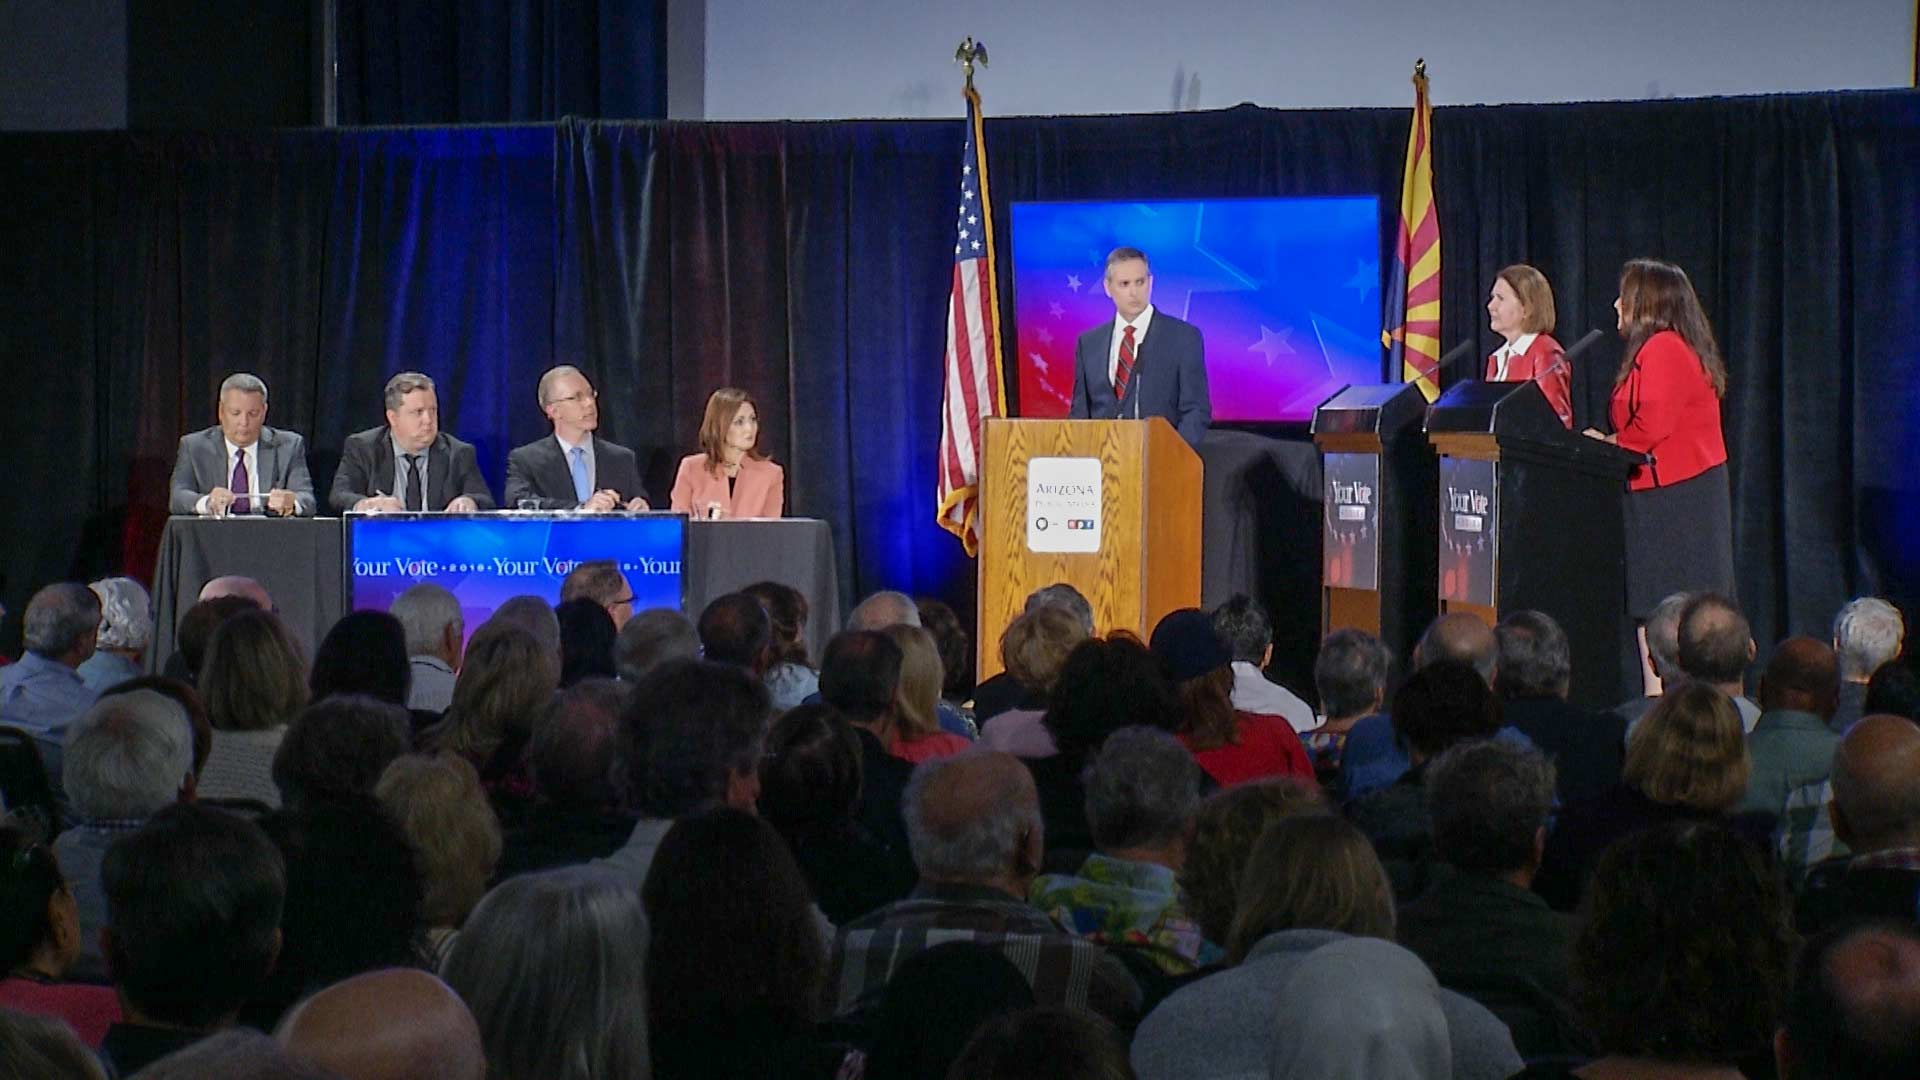 Arizona Public Media's Your Vote 2018 2nd Congressional District Debate held at the Tucson Jewish Community Center on Oct. 9, 2018.